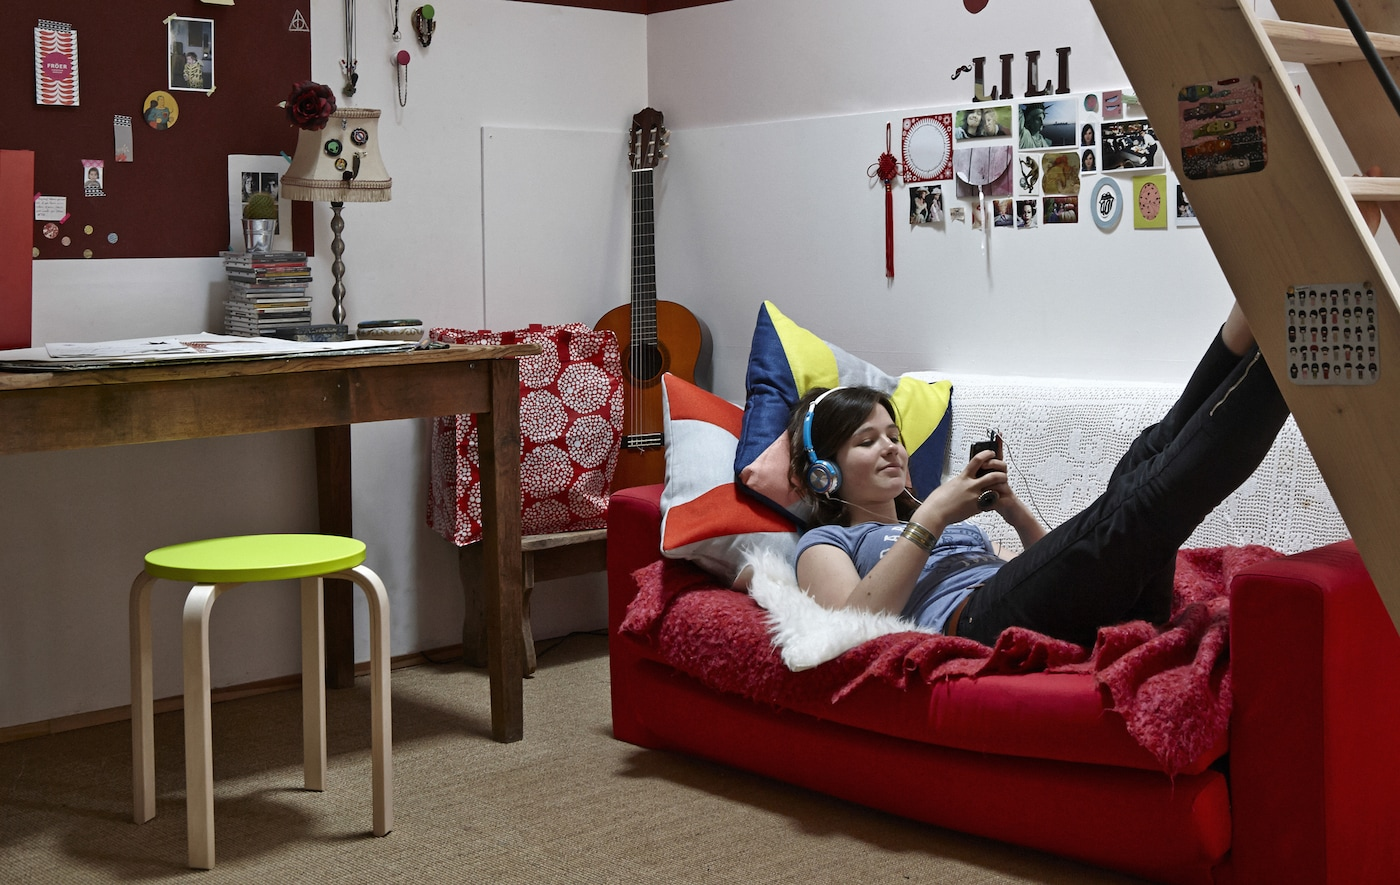 An overview of French teenager Lison's teen bedroom, including a red two-seater sofa and personalised lime green stool.